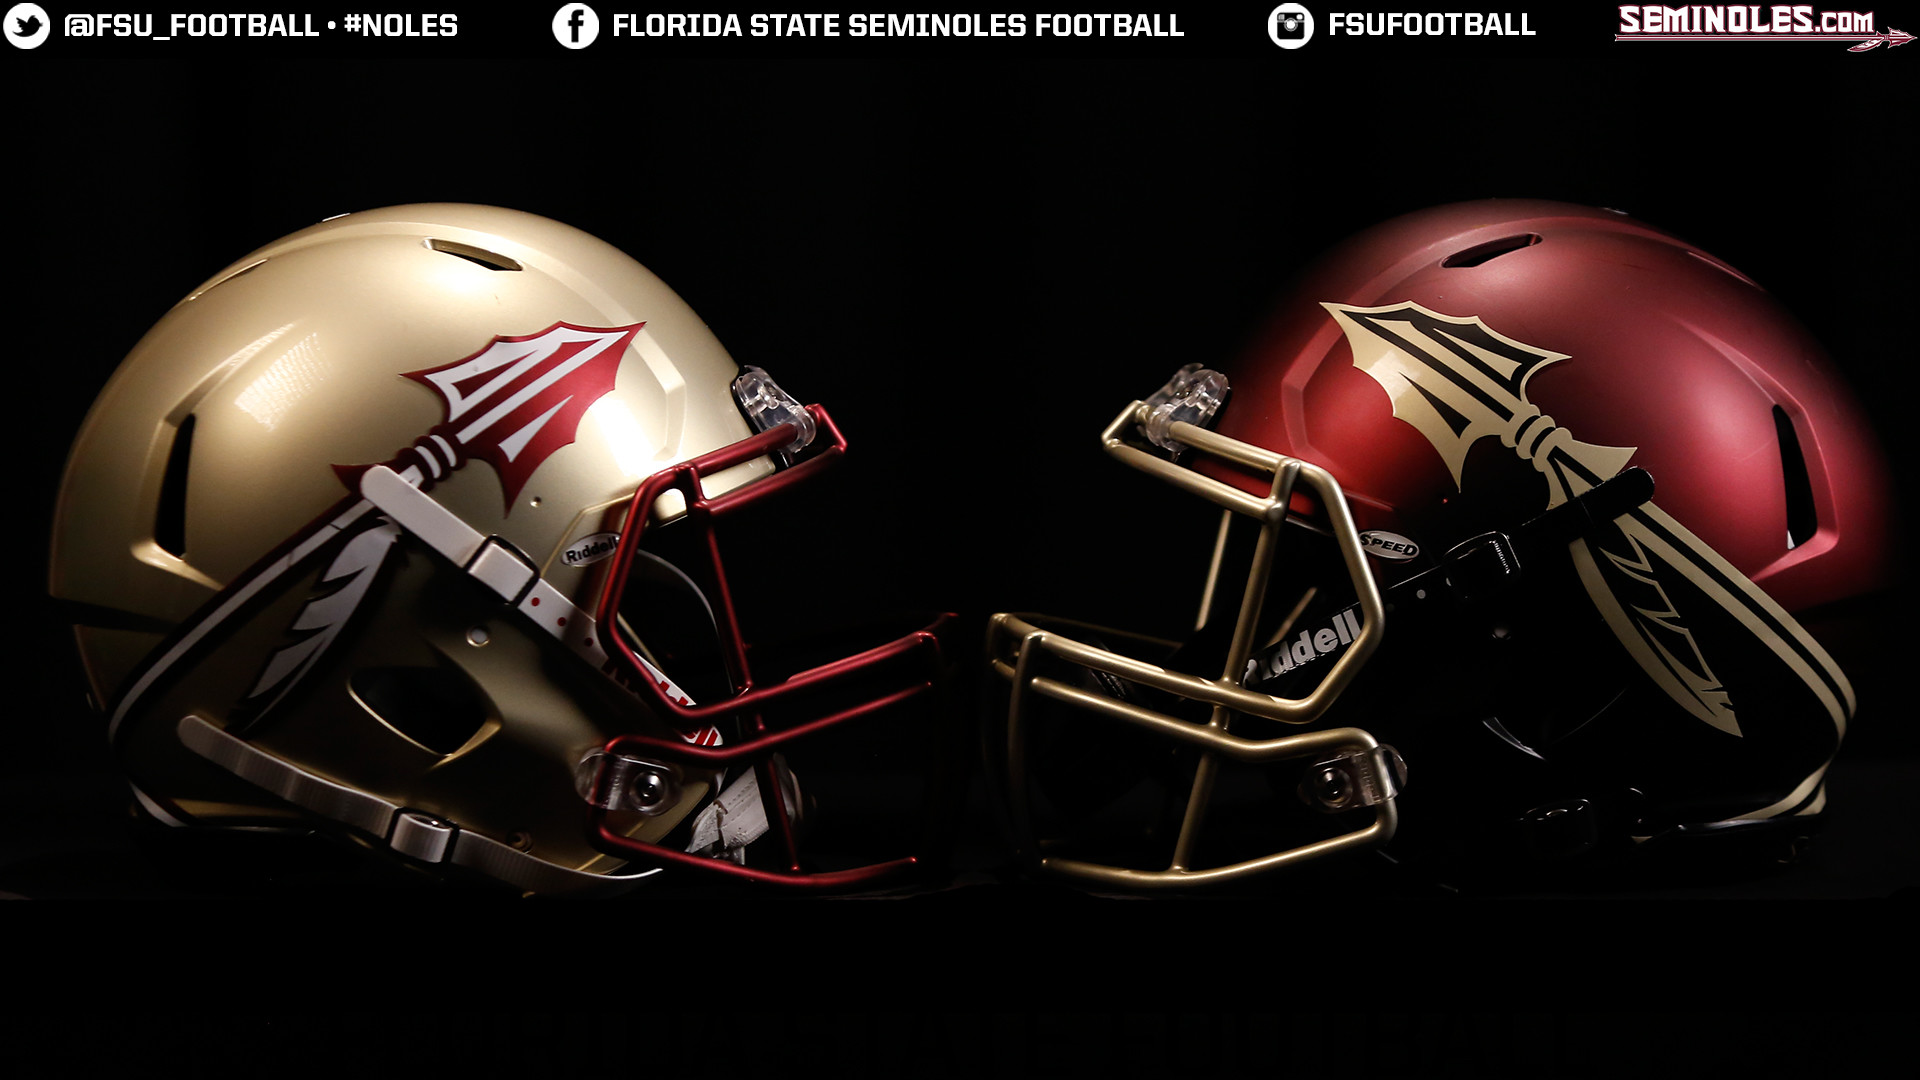 Florida state seminoles wallpaper 76 images 1920x1080 widescreen football 6 voltagebd Image collections